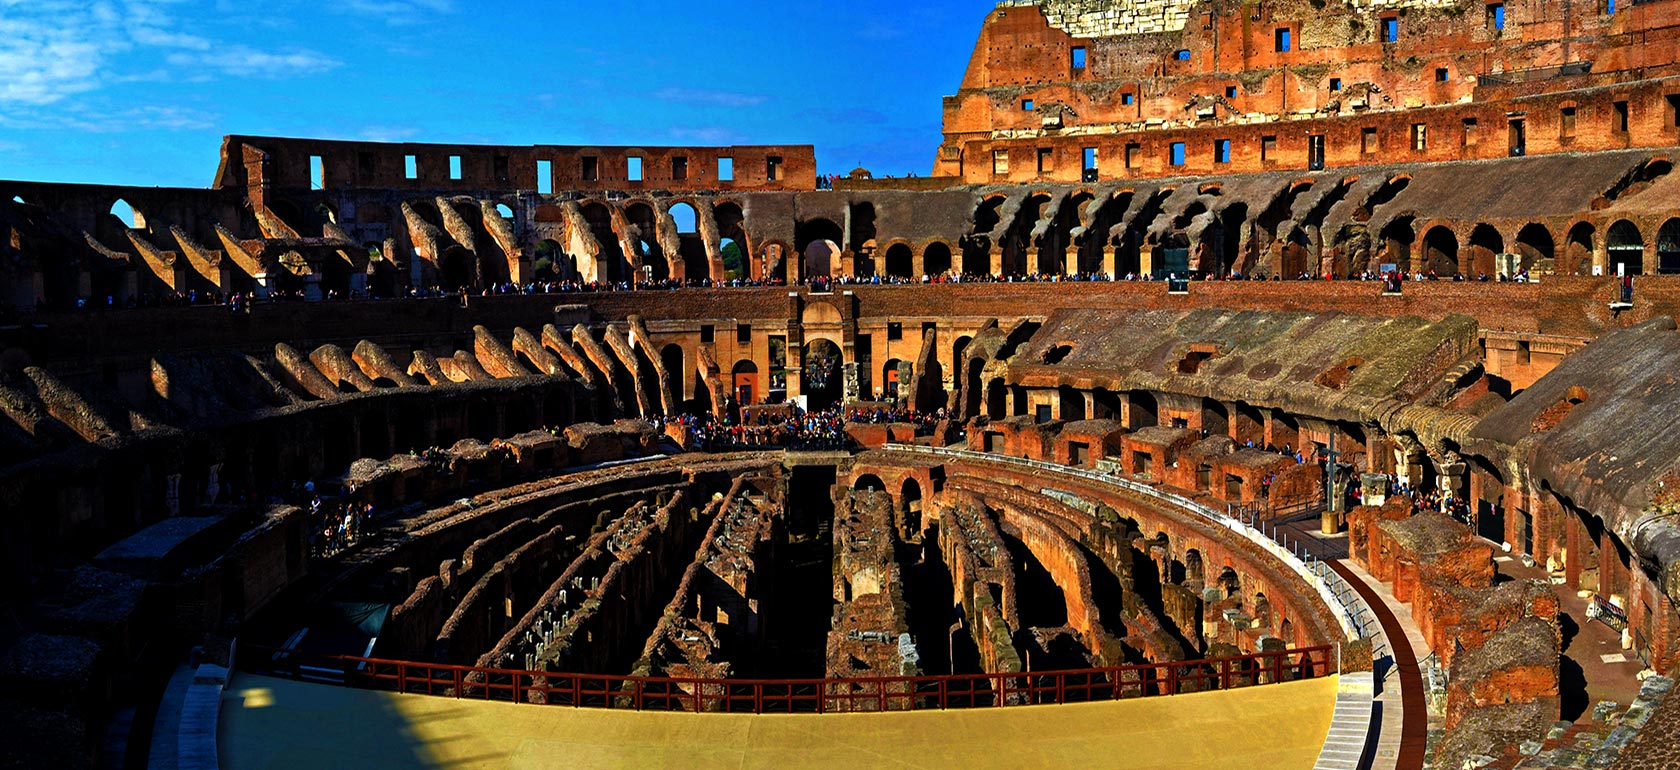 Colosseum + Belvedere Panoramic View (English Tour)